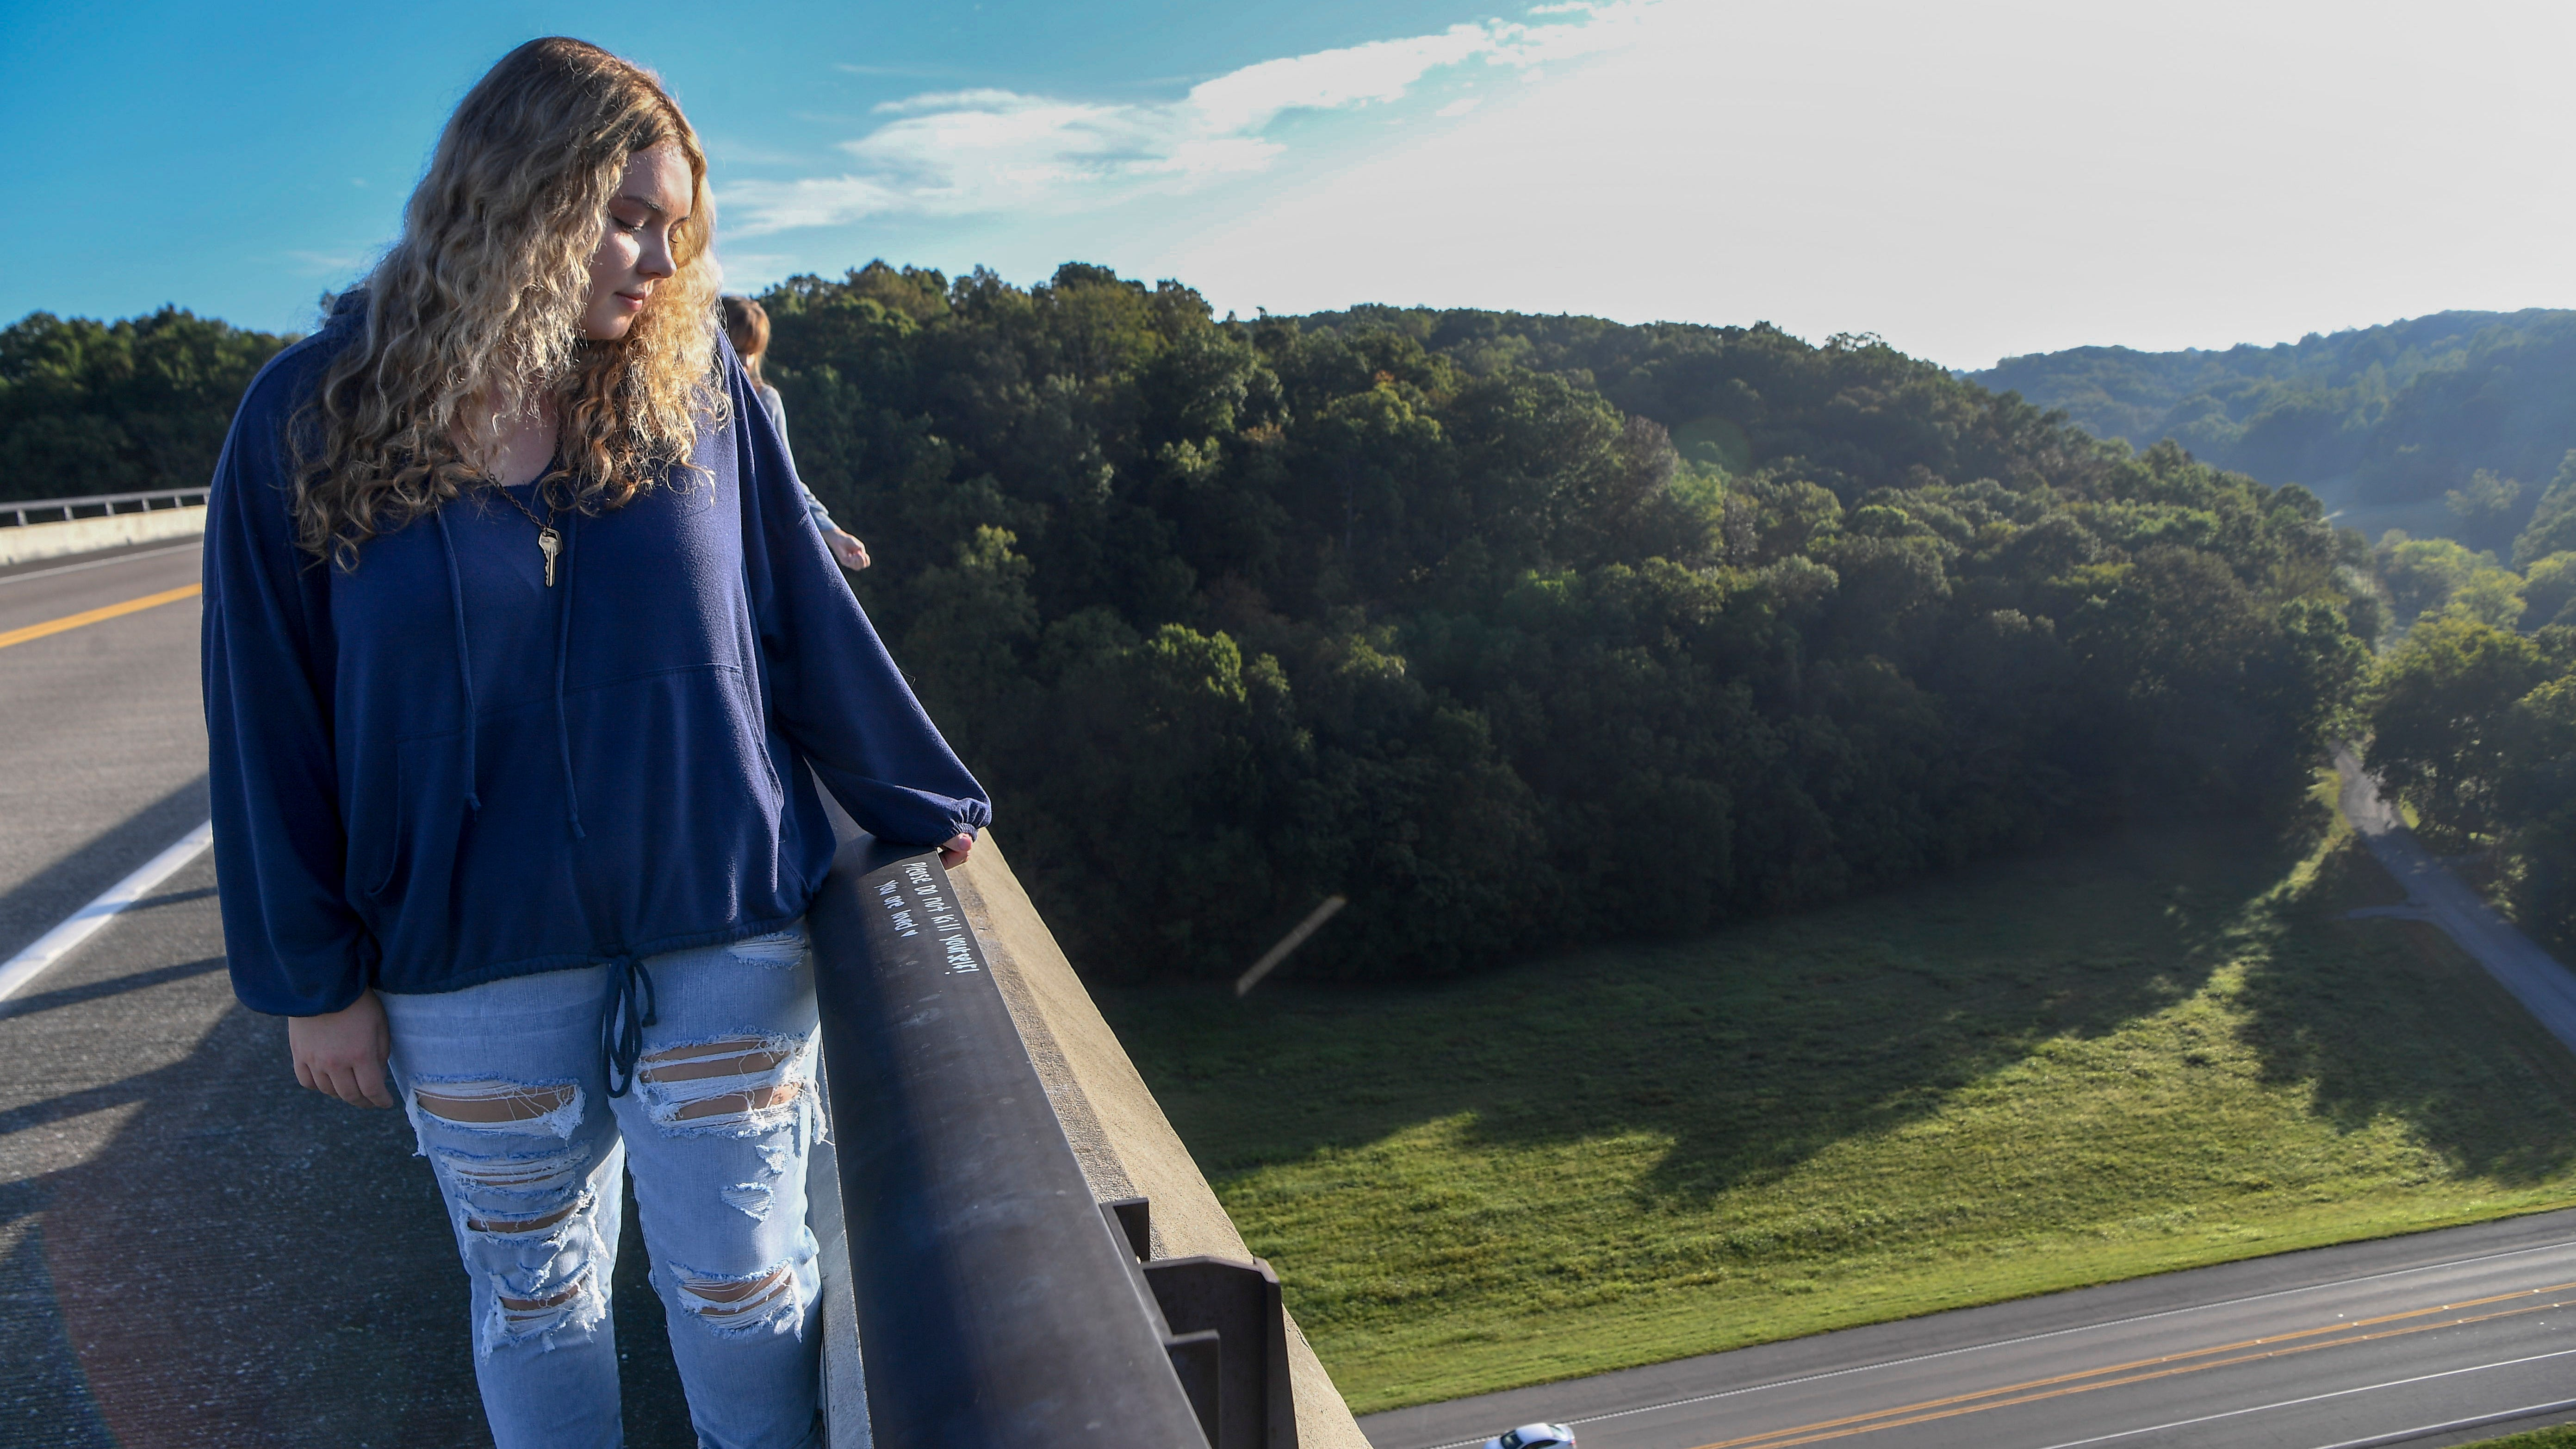 13 suicide attempts, 18 hospitalizations, few options: Lost in Tennessee's mental care system